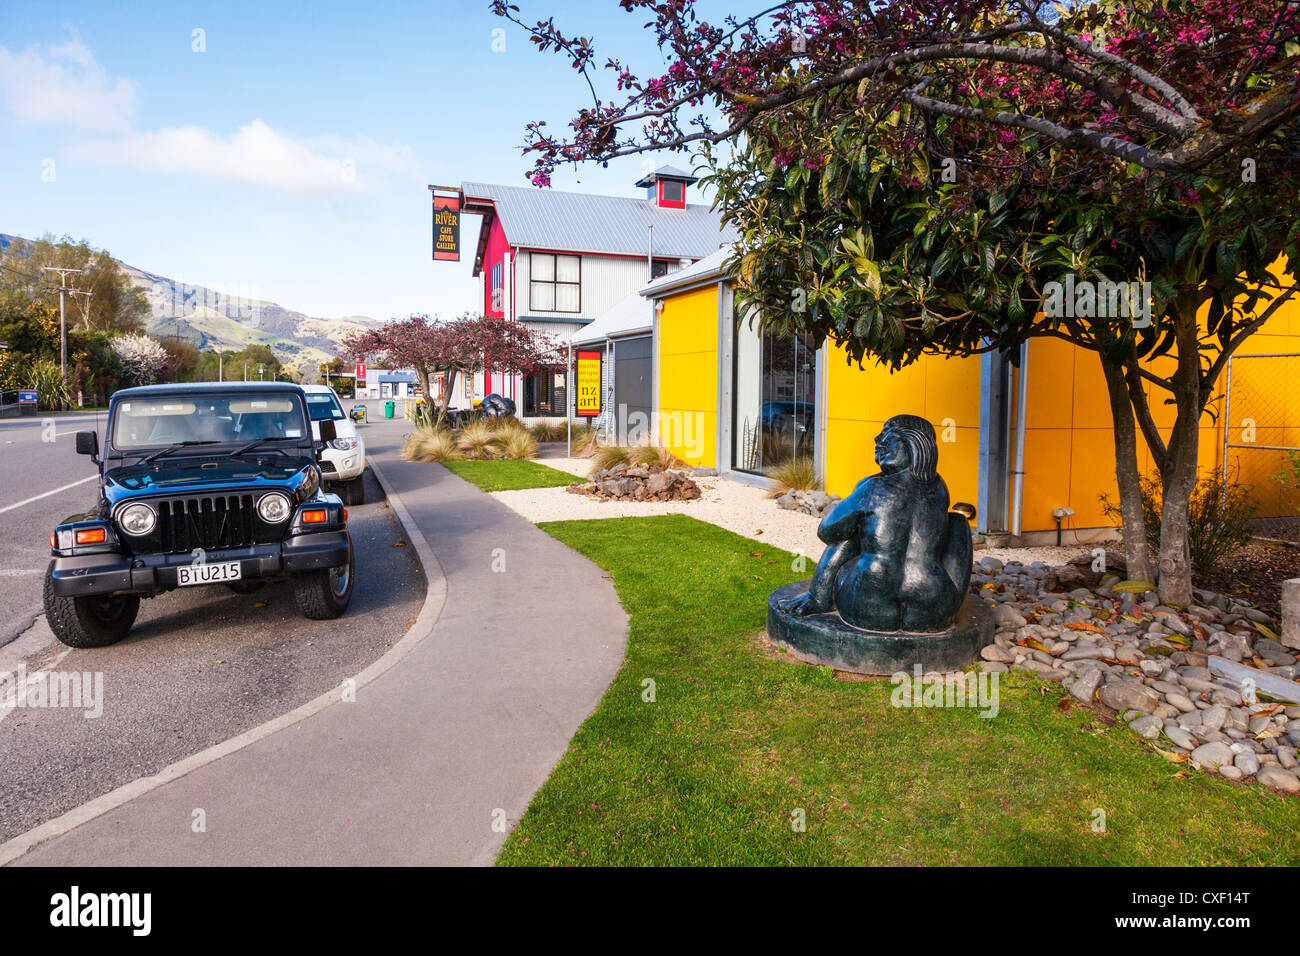 The main street in the village of Little River, Canterbury, New Zealand, with New Zealand Art and a jeep parked - Stock Image